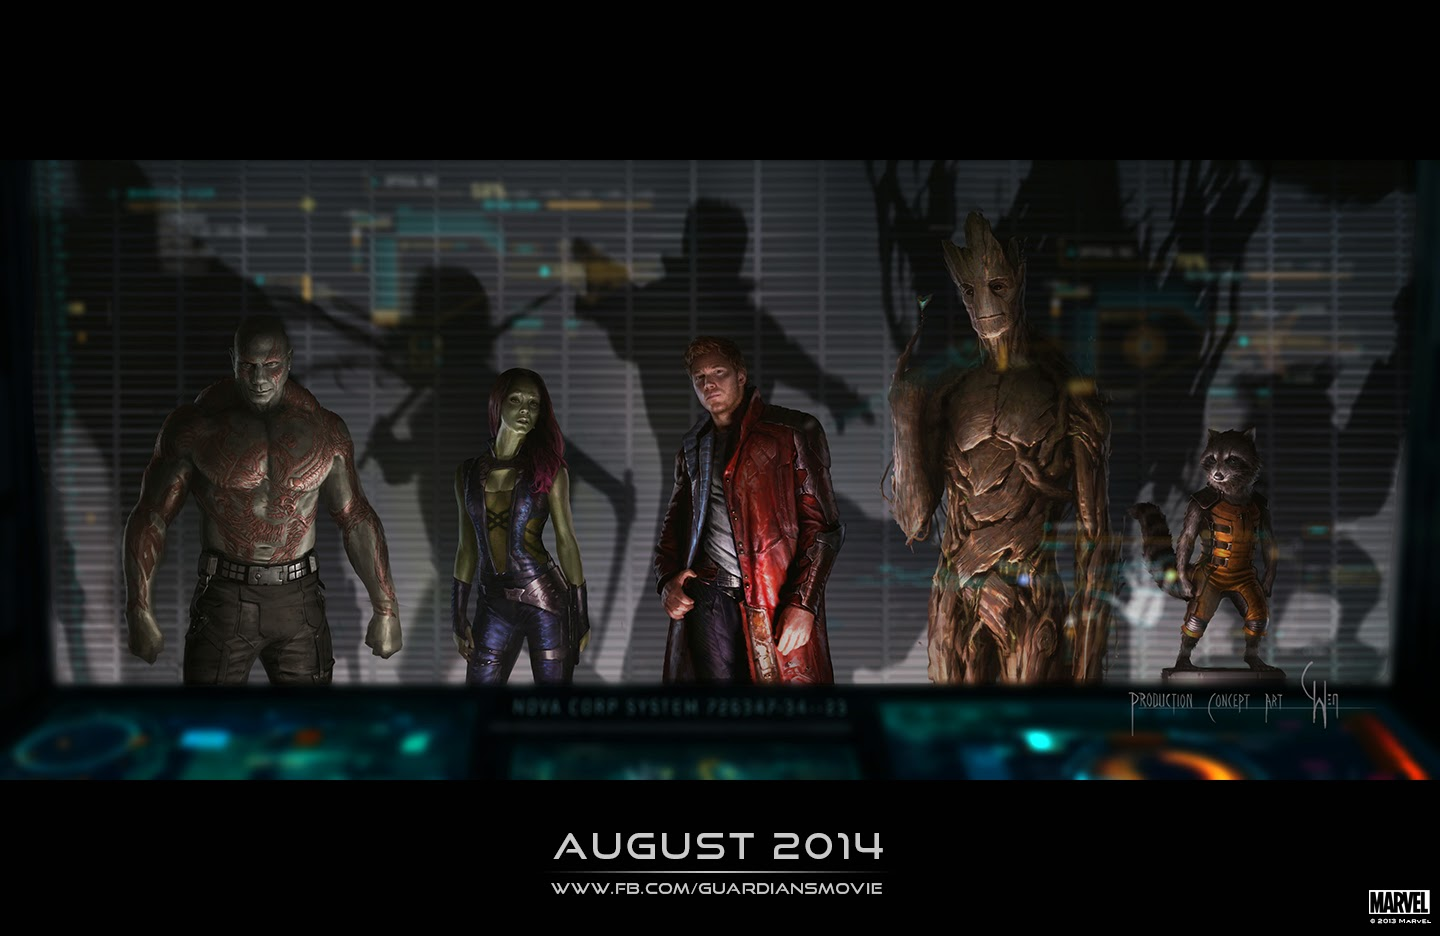 Image and synopsis from guardians of the galaxy galactic news one